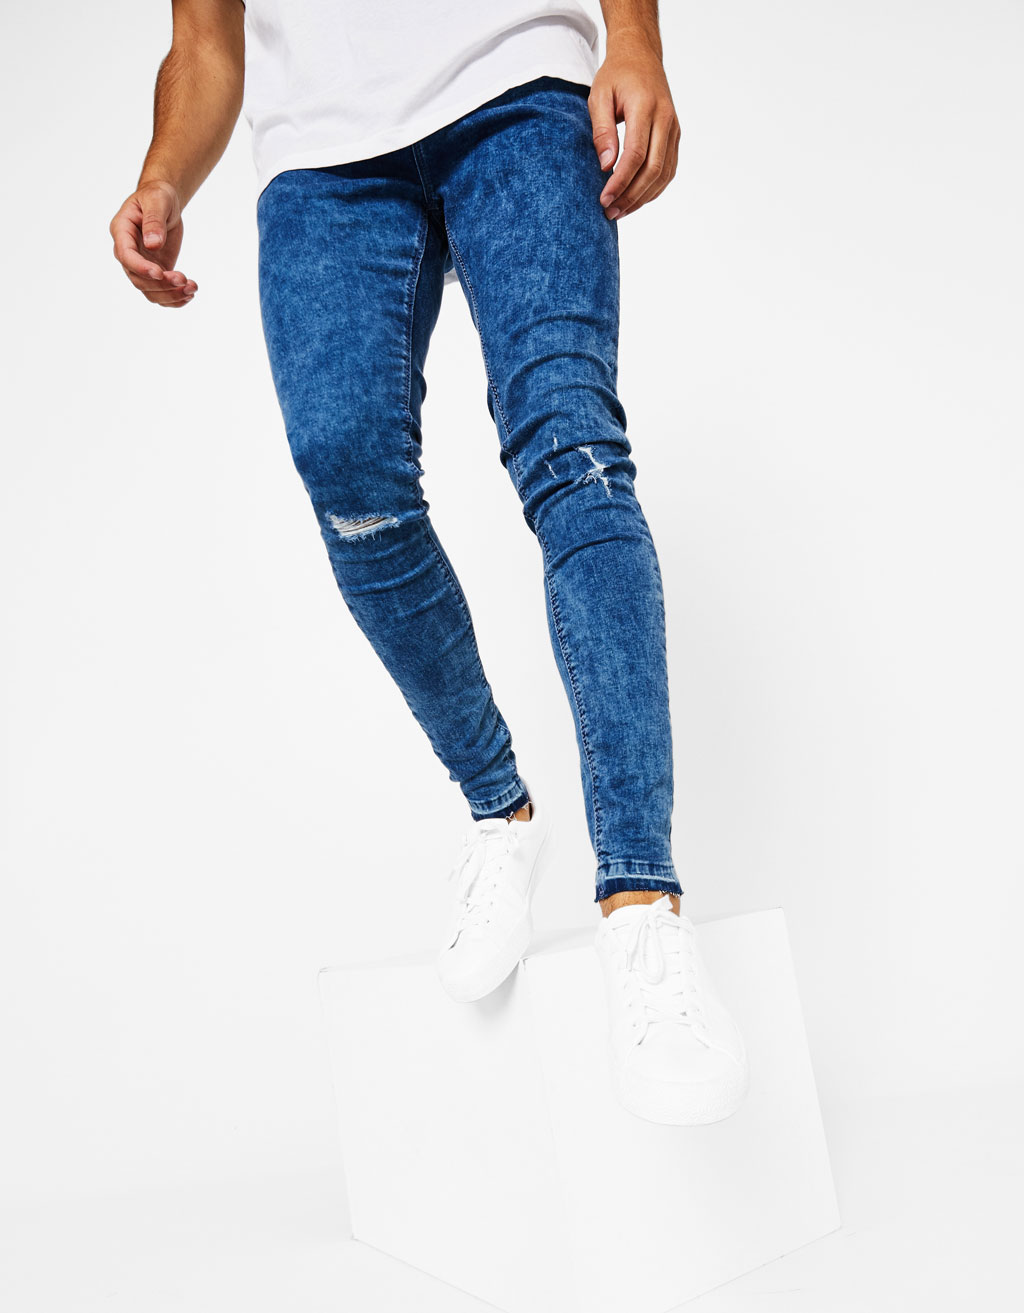 Super Skinny-Jeans im Washed-Look